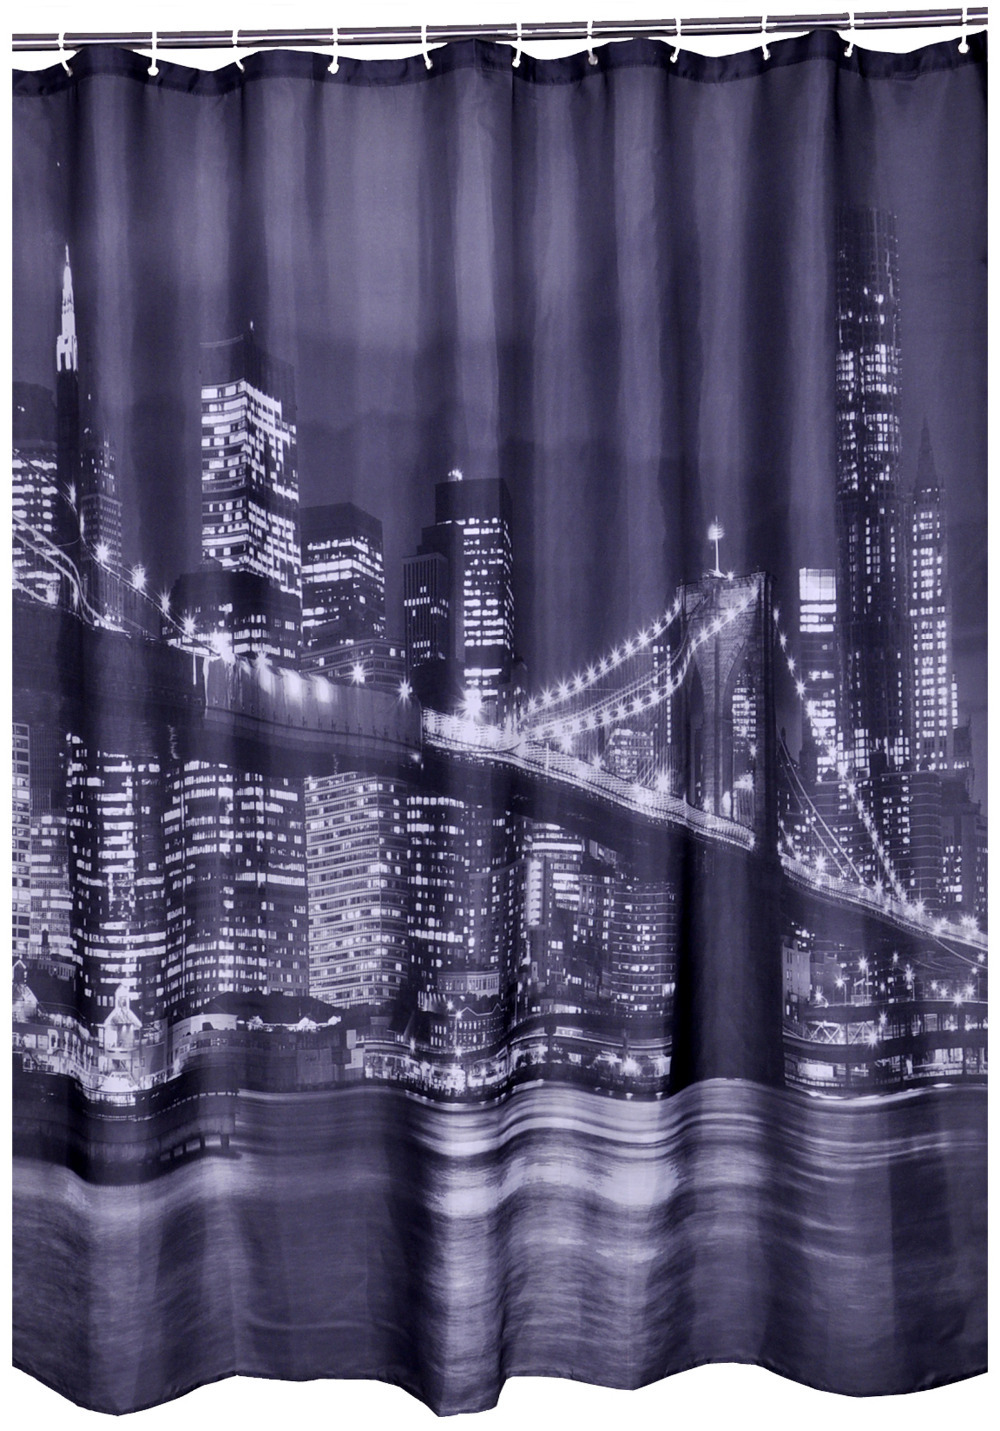 Bathroom Decoration Polyester Printed Fabric Brooklyn Bridge Scene Style Shower Curtains Liner Waterproof Bath 7272 In From Home